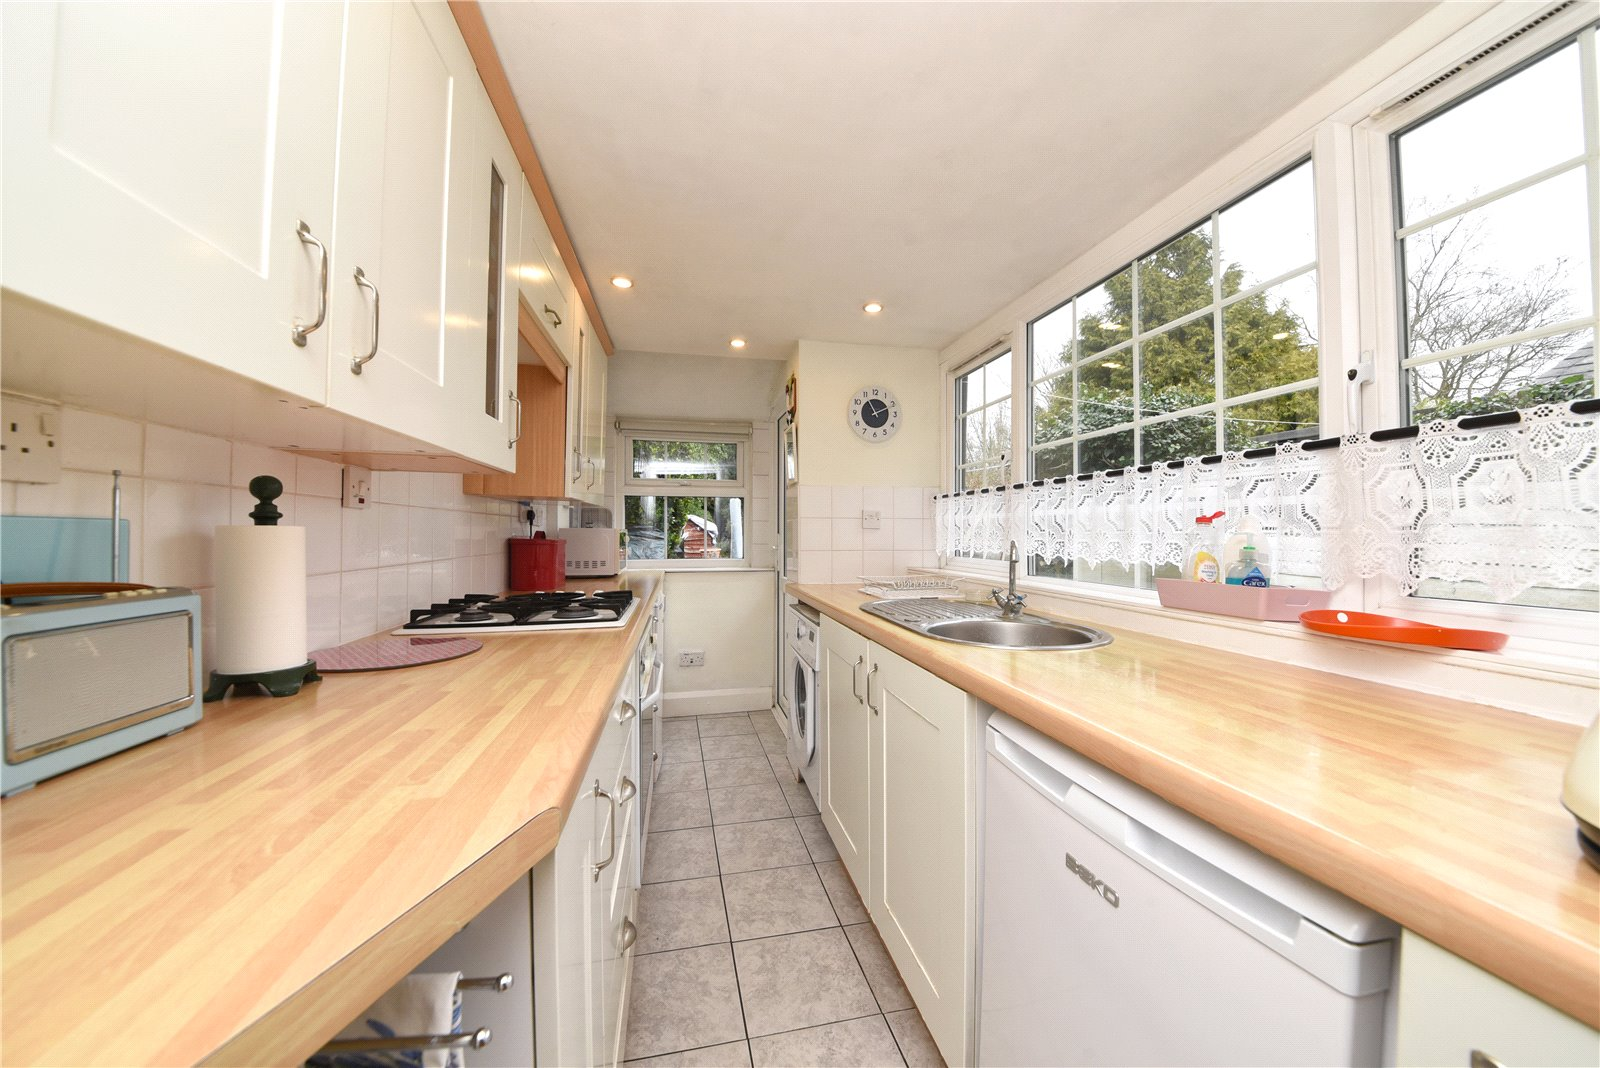 2 bed house for sale in London, N12 9JN 1